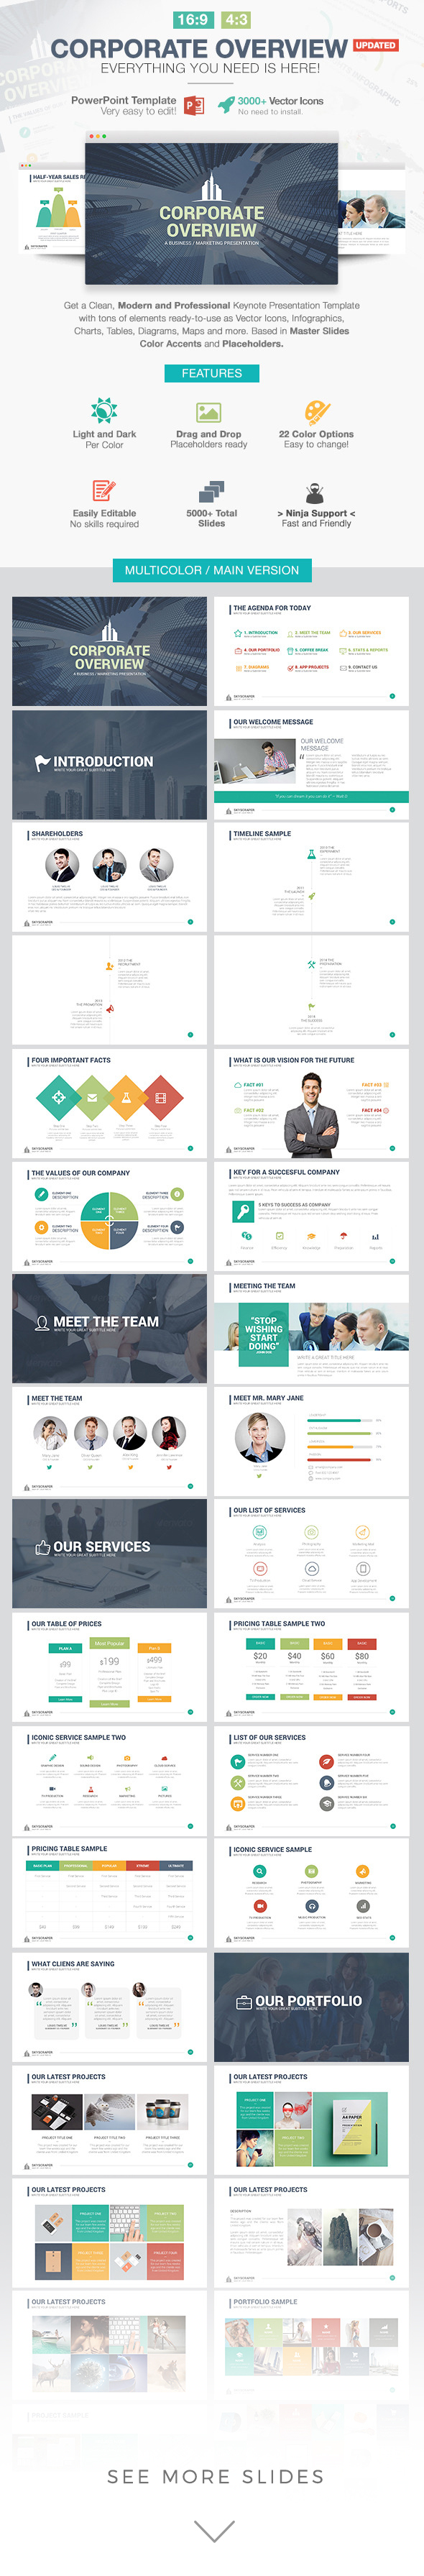 Corporate Overview PowerPoint Template, Keynote, Google Slides